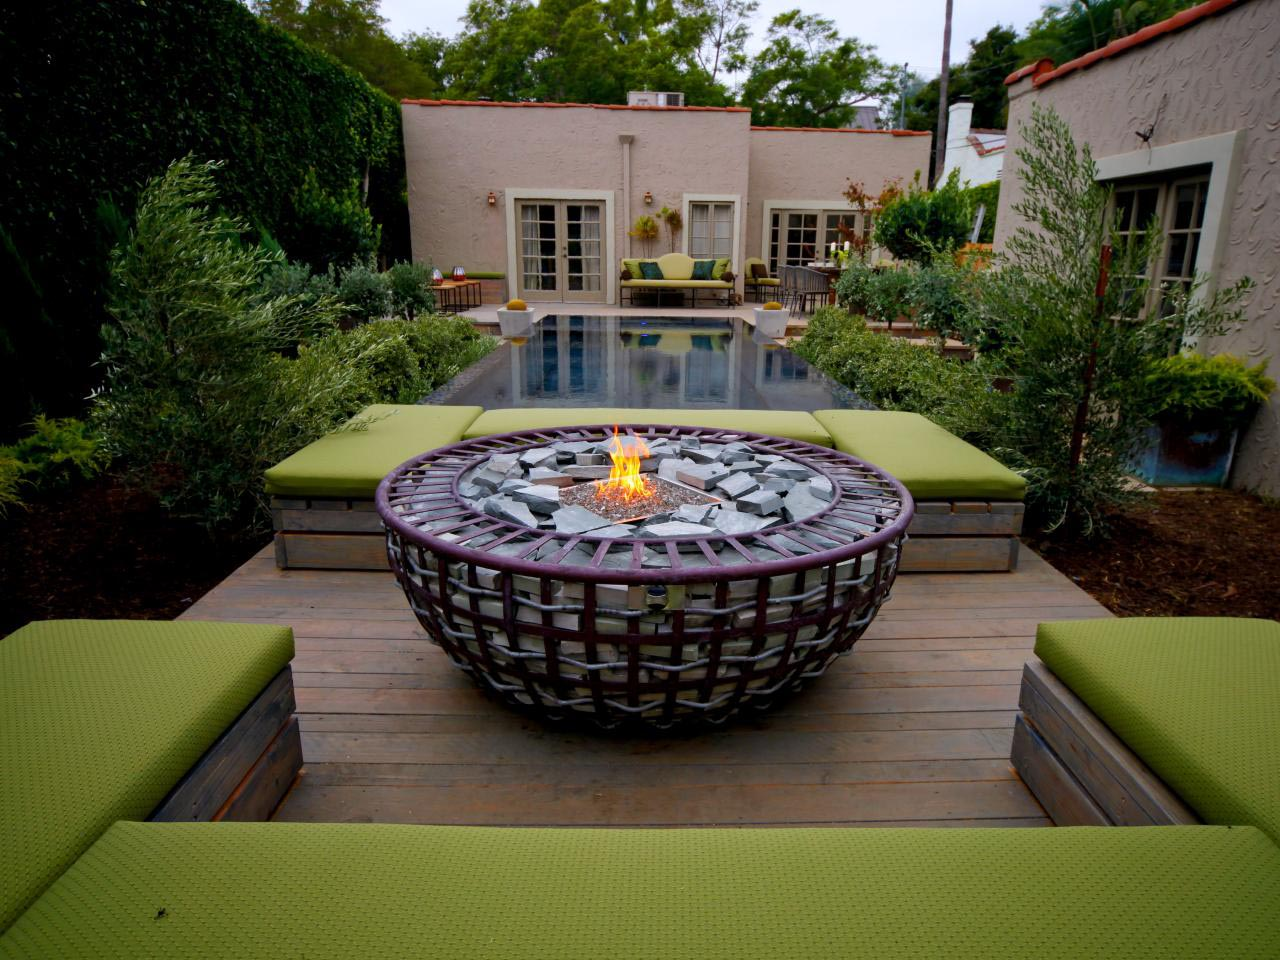 Simple backyard fire pit ideas fire pit design ideas for Simple small yard ideas